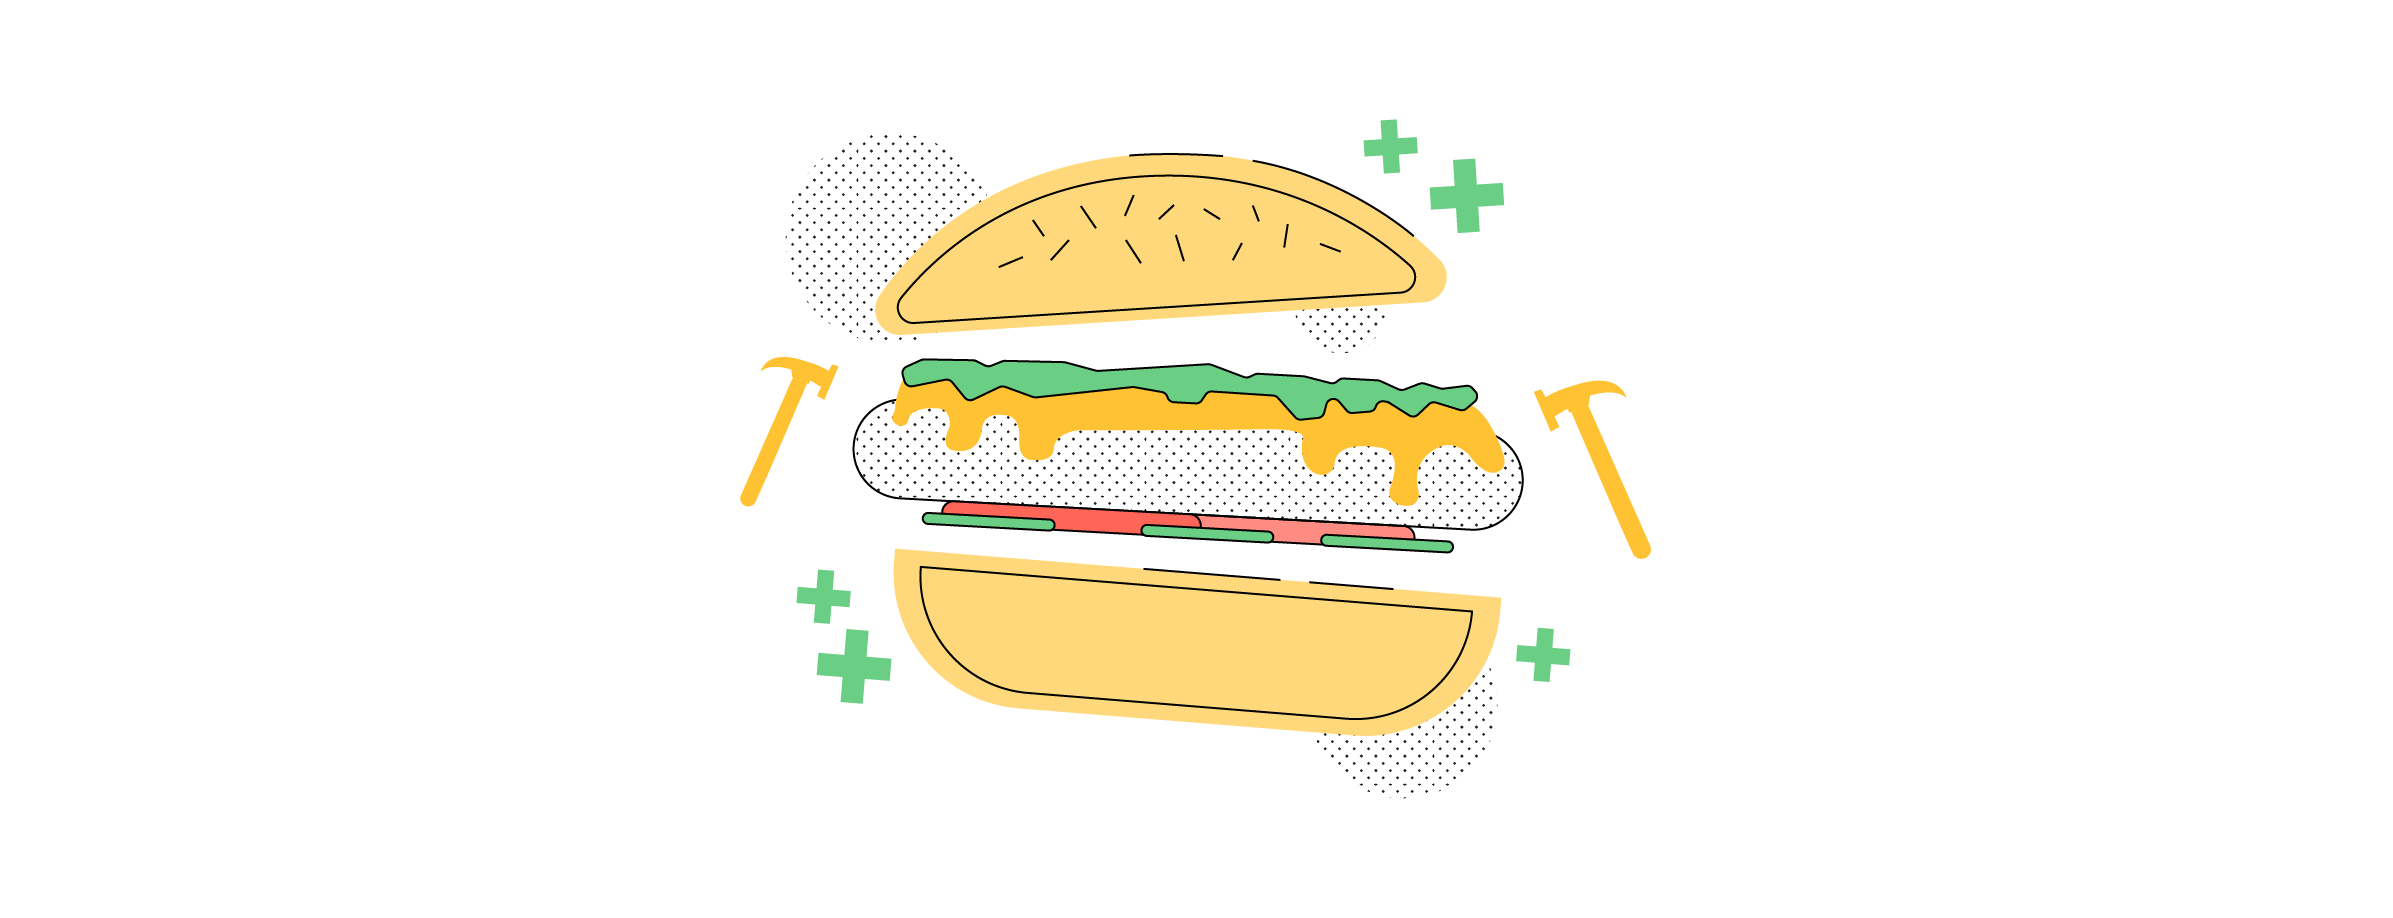 The burger model for presenting feedback in one-on-one meetings